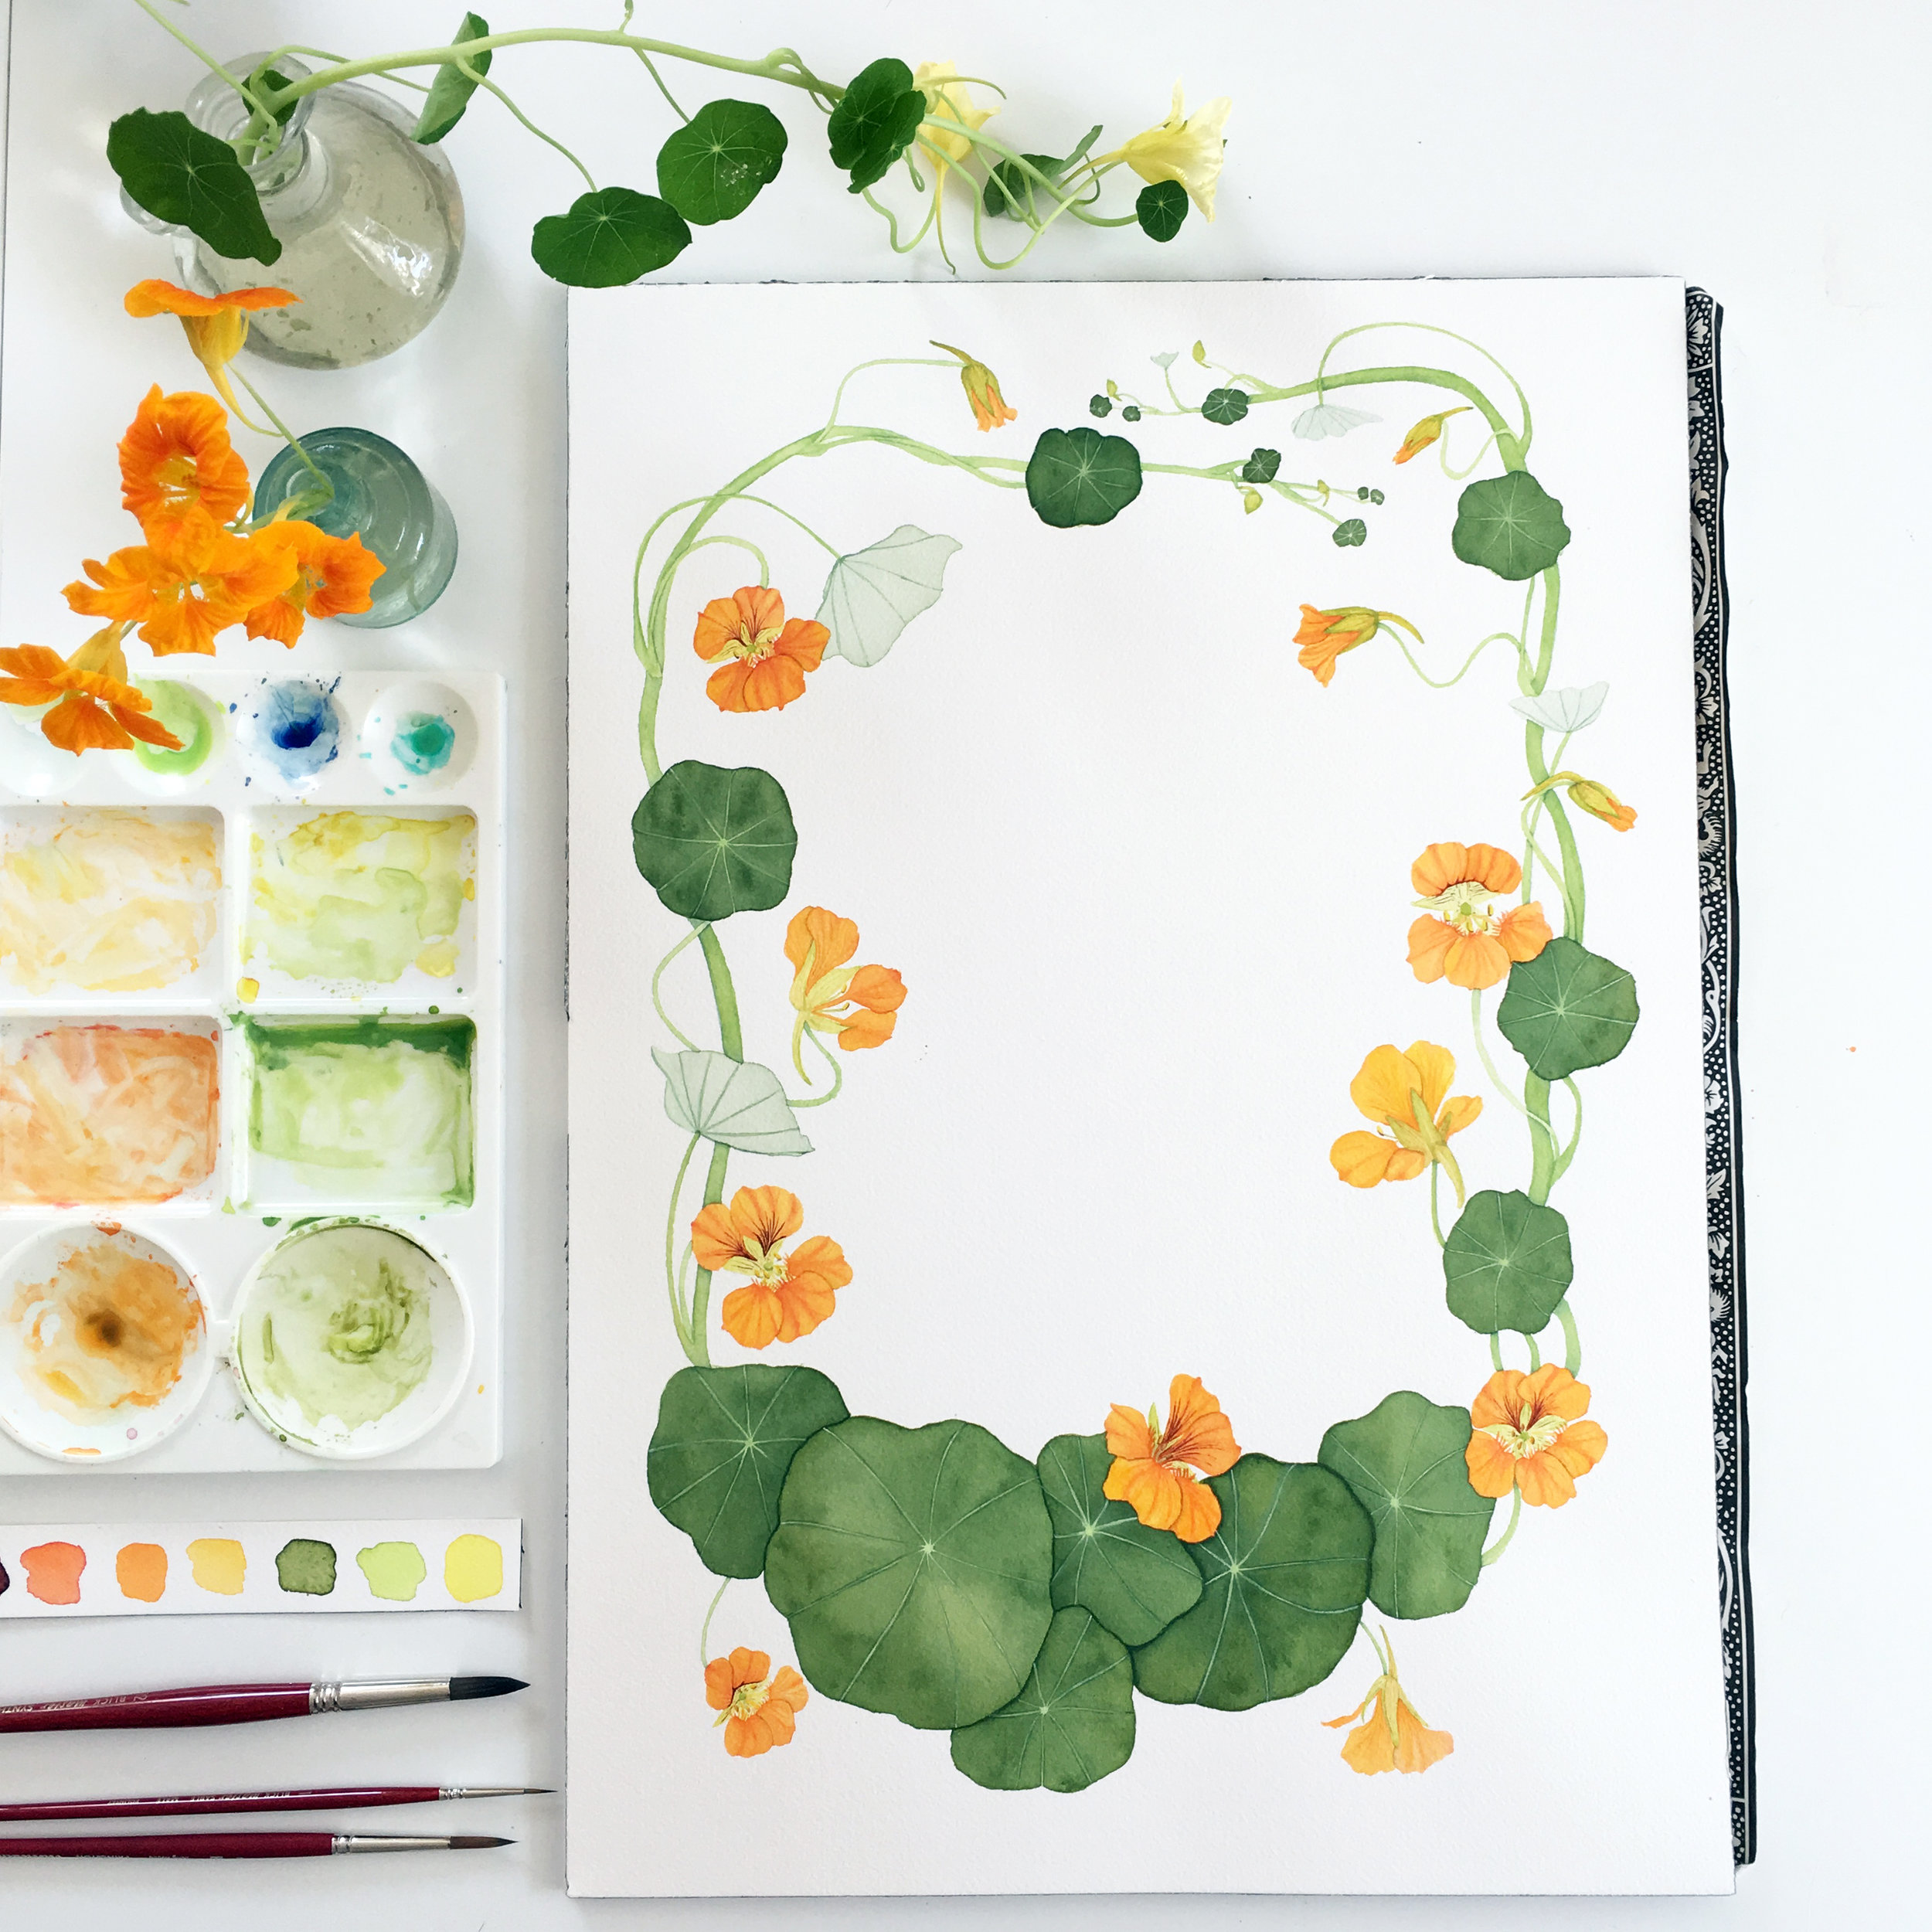 My Nasturtium Painting Created to Use in a Tea Towel Calendar Design by Anne Butera of My Giant Strawberry